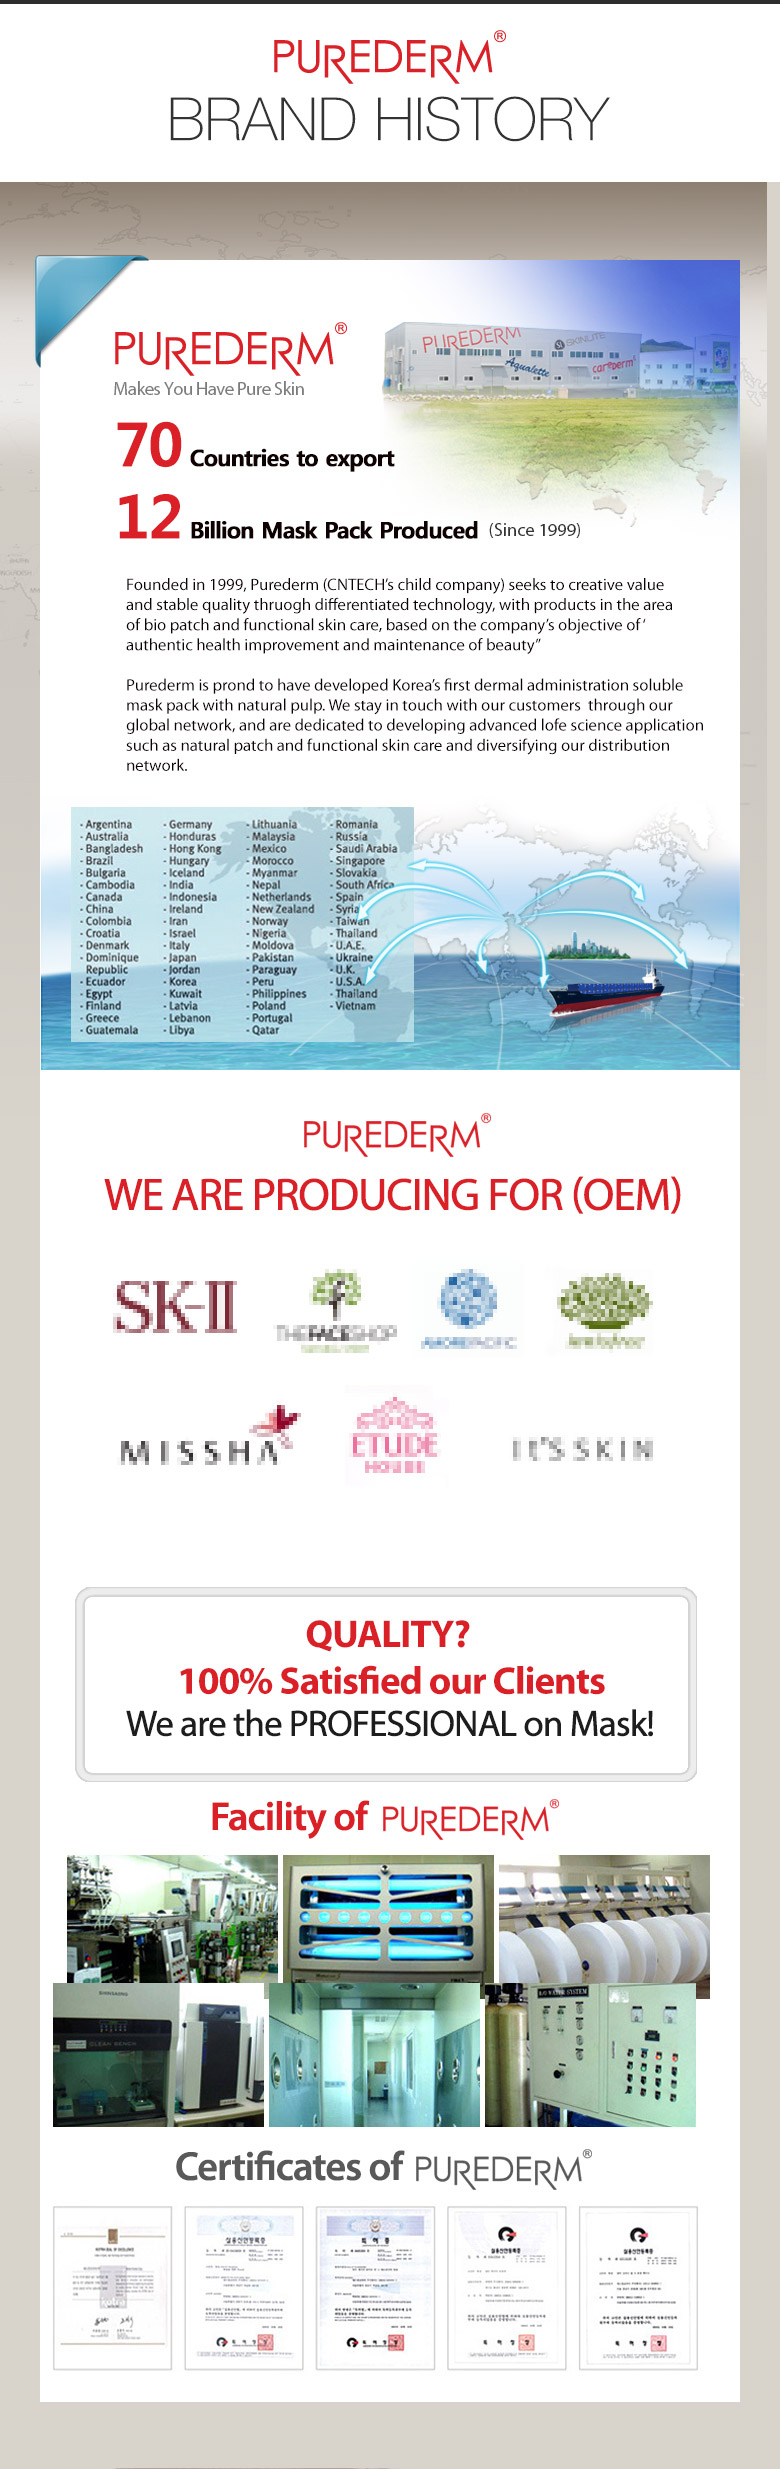 Every Need Want Day Purederm Eye Mask Check The Reviews